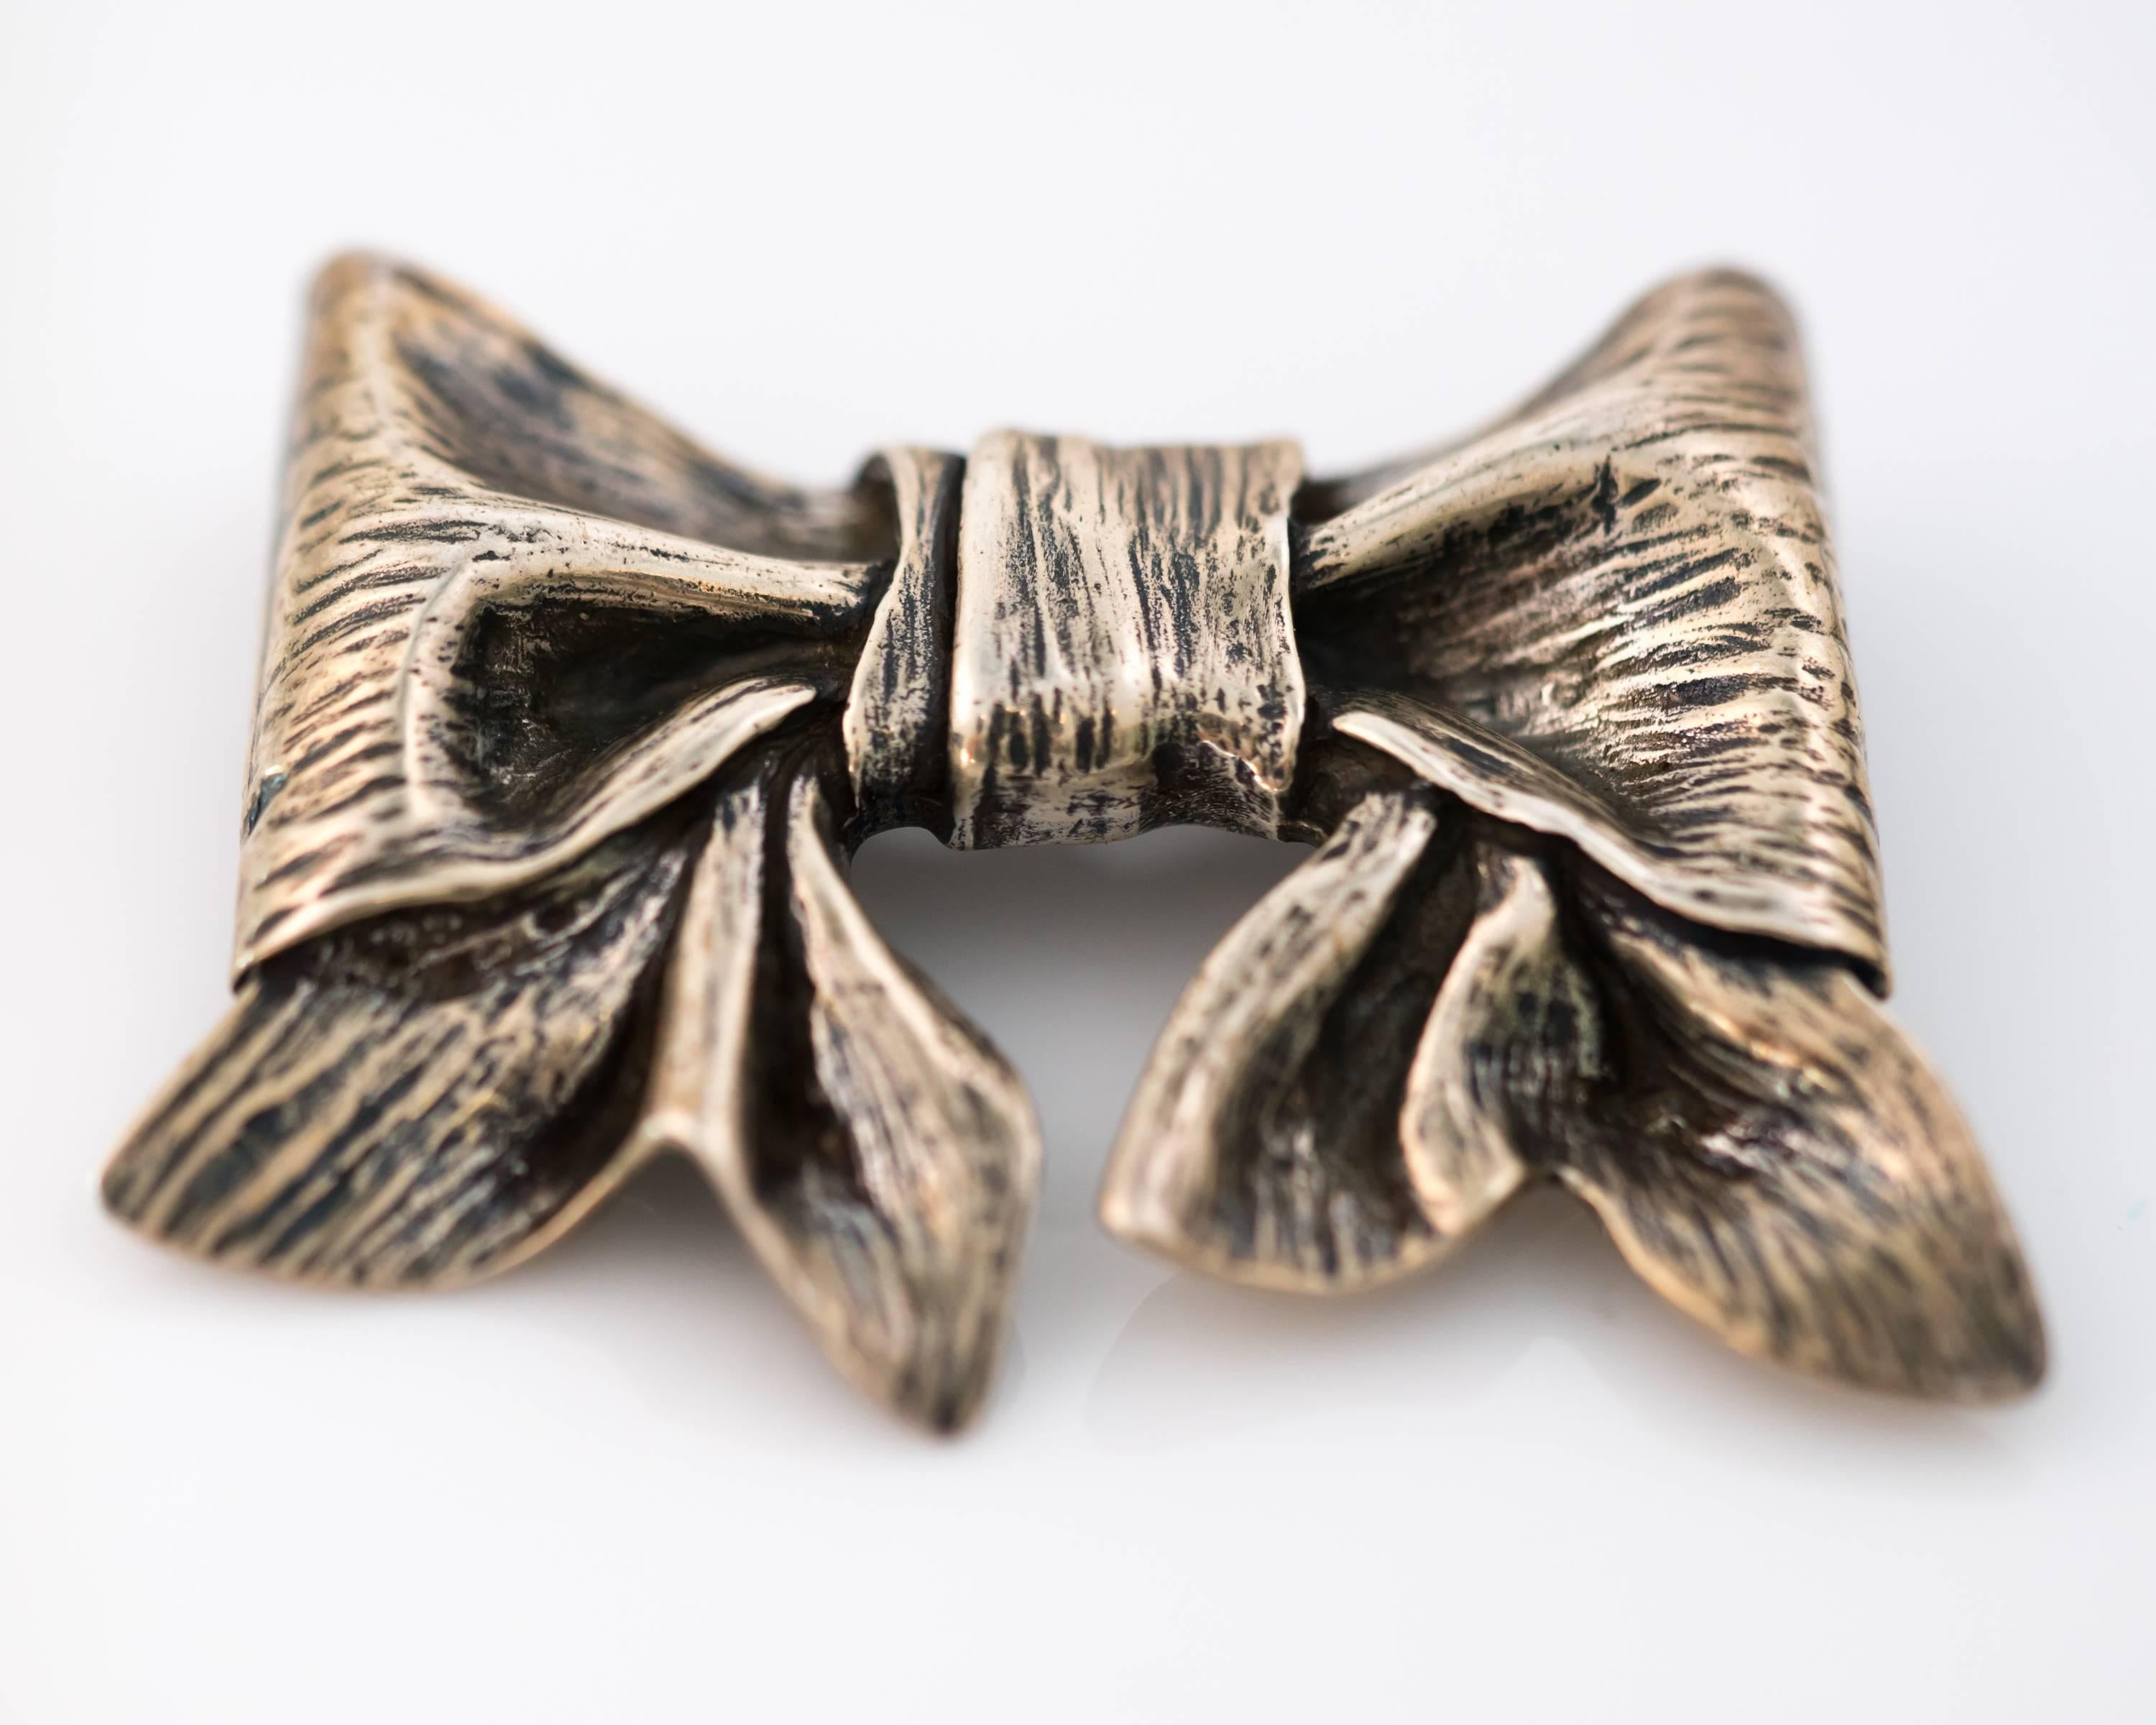 ee31f861dcc 1960s James Avery Sterling Silver Bow Brooch For Sale at 1stdibs